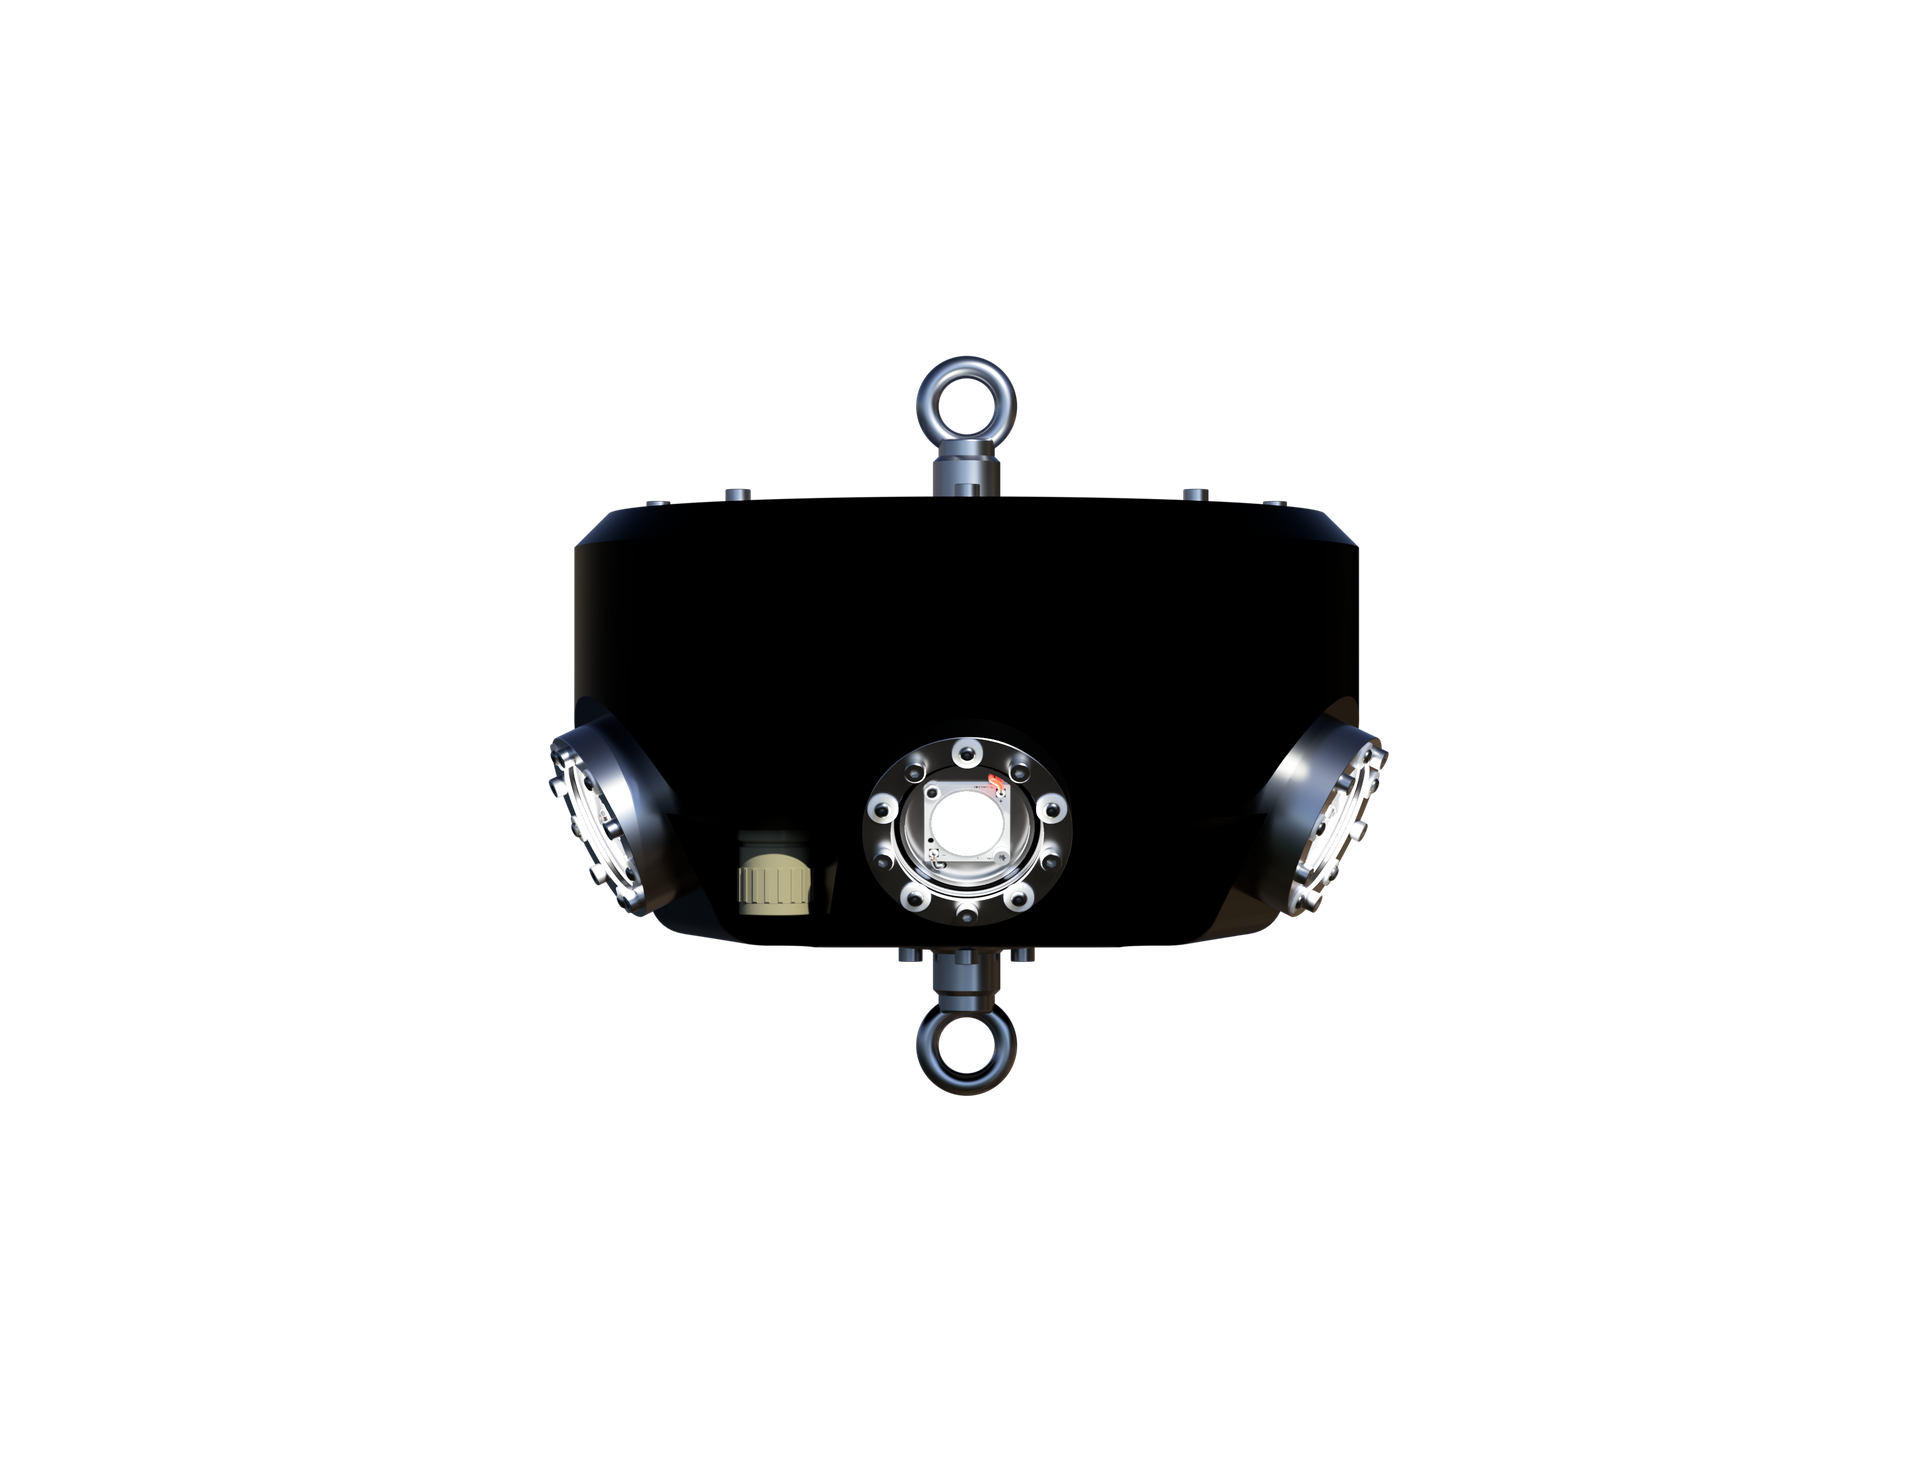 Quintus LED seen from the side